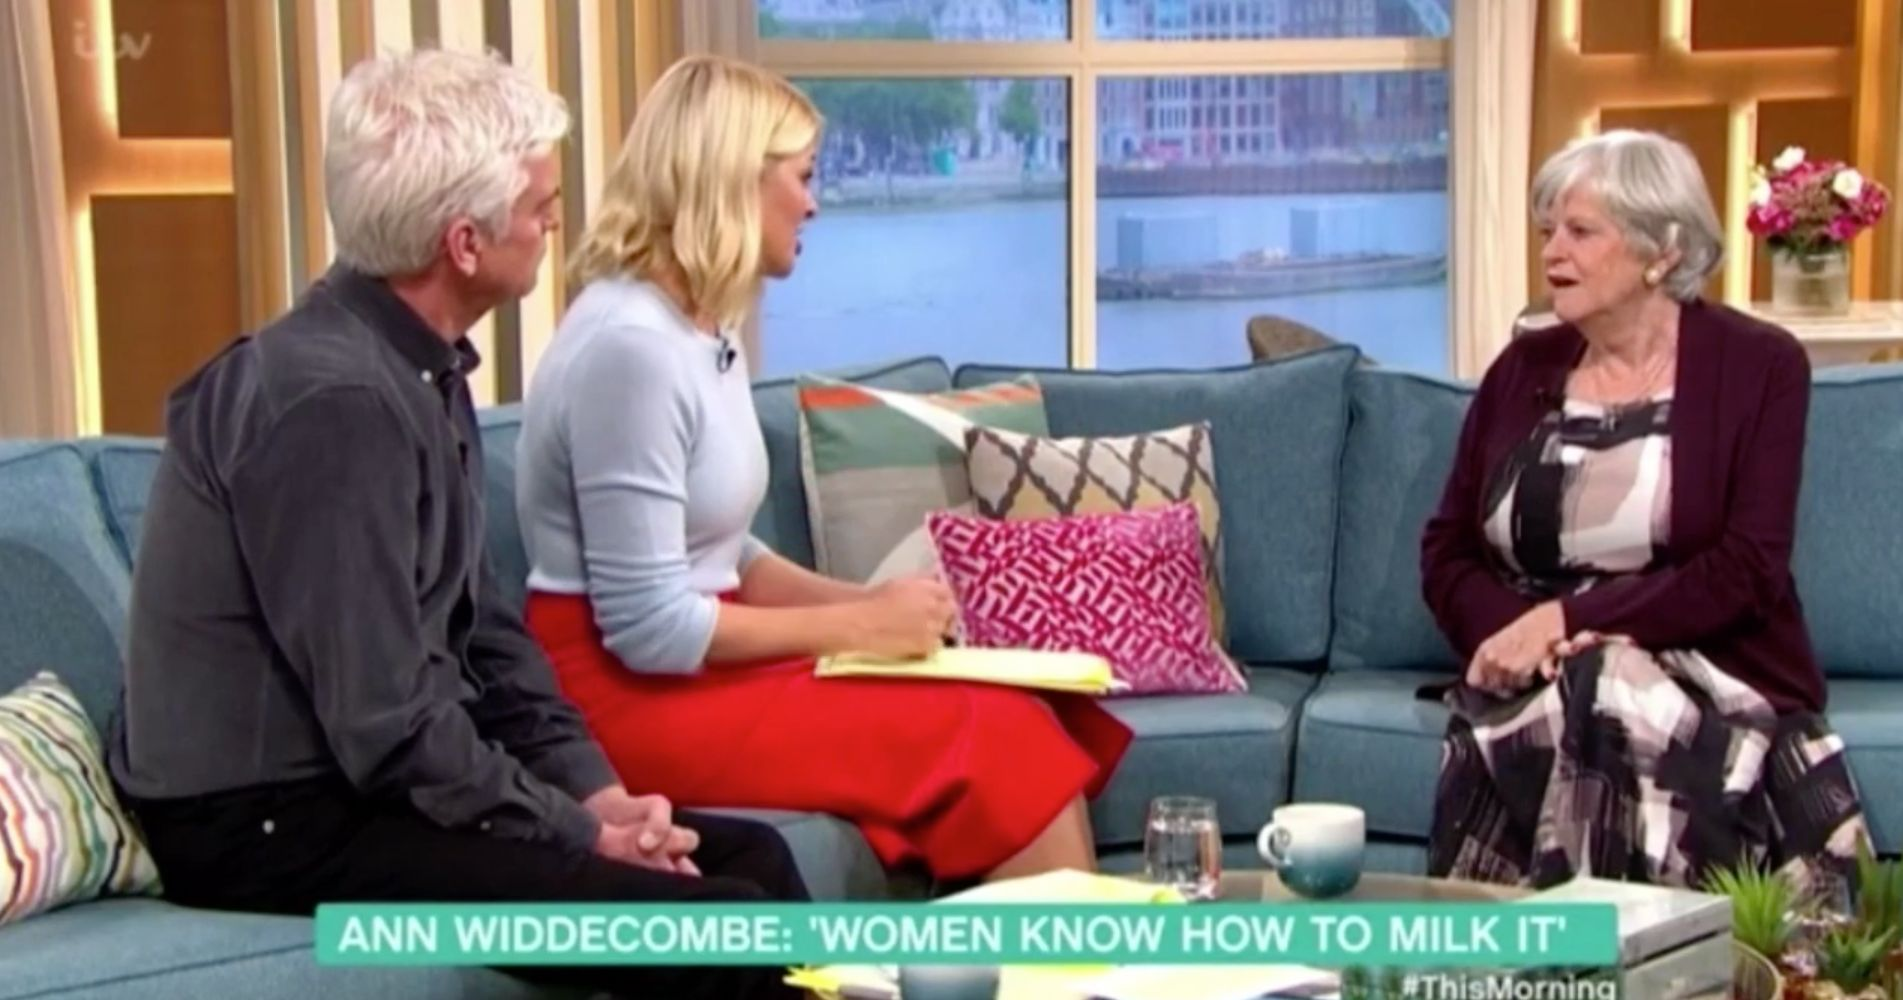 Ann Widdecombe airs her views on women's rights on 'This Morning'